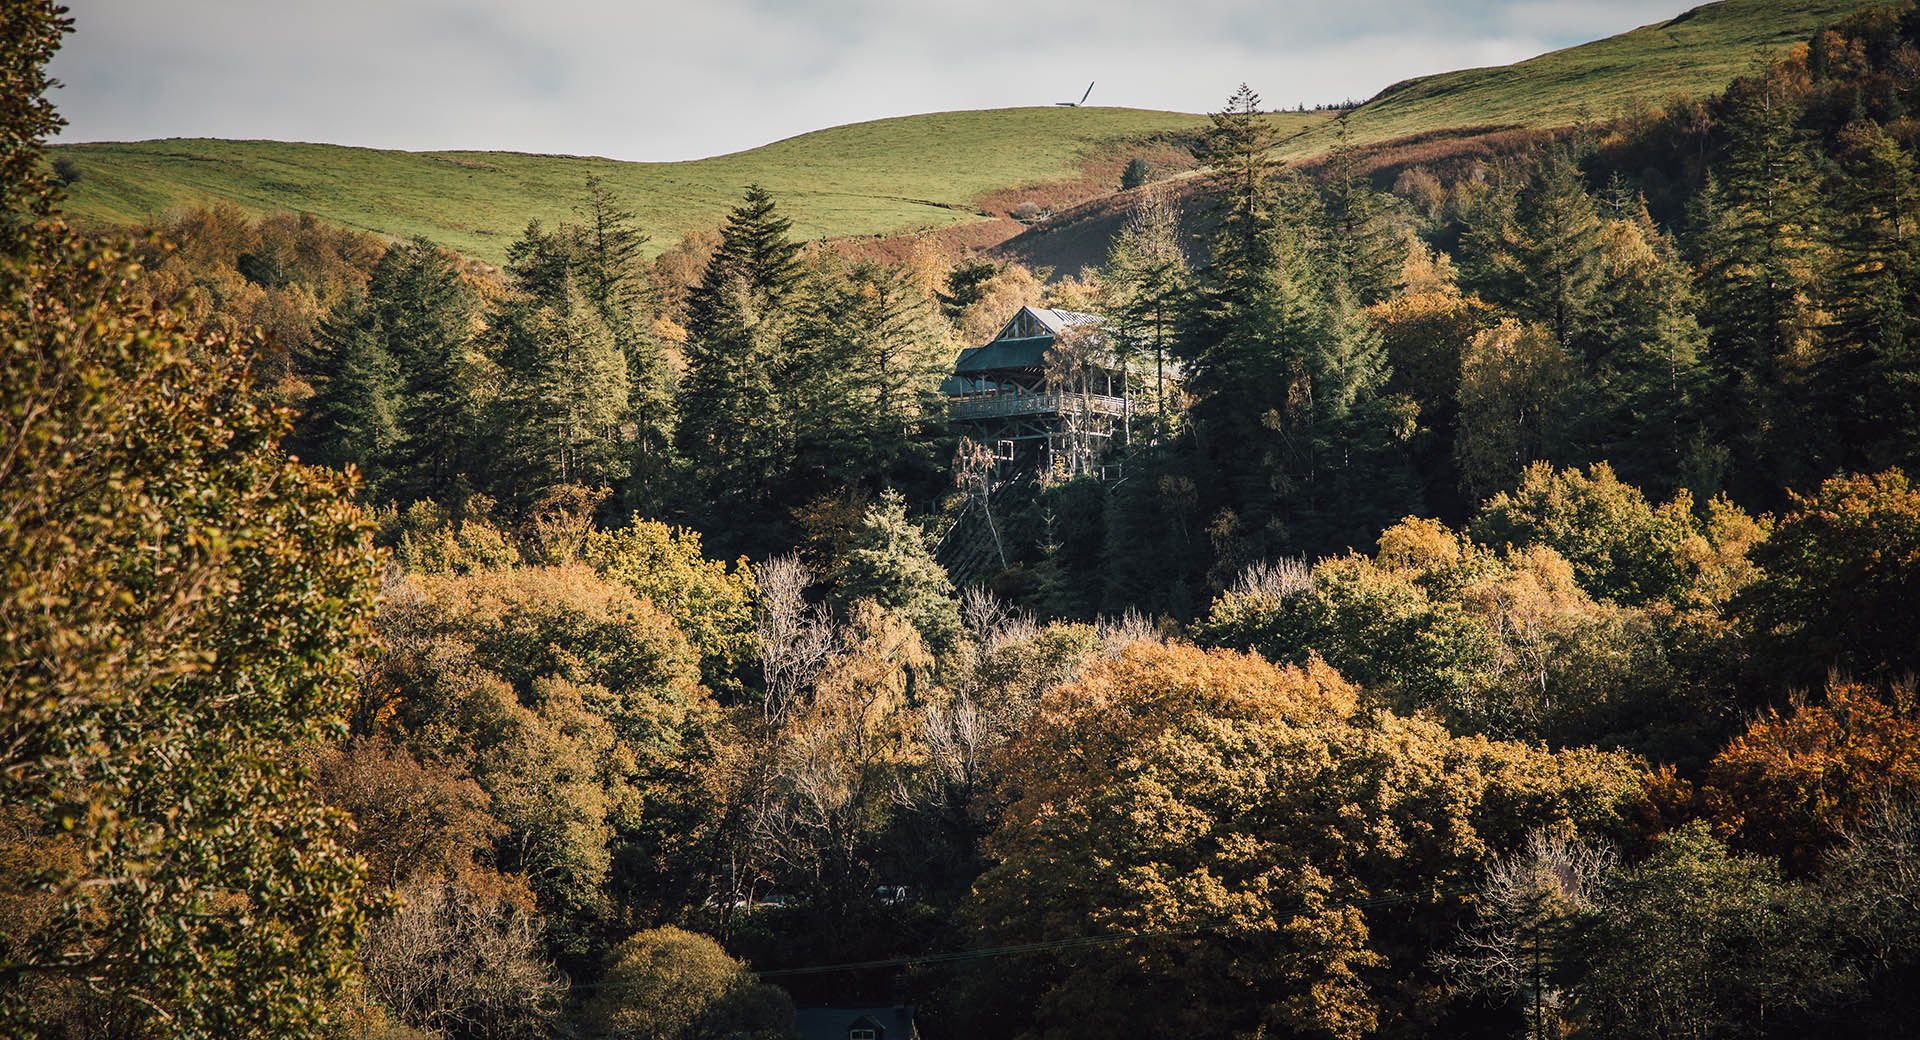 Looking through autumnal trees at the cliff railway station at CAT